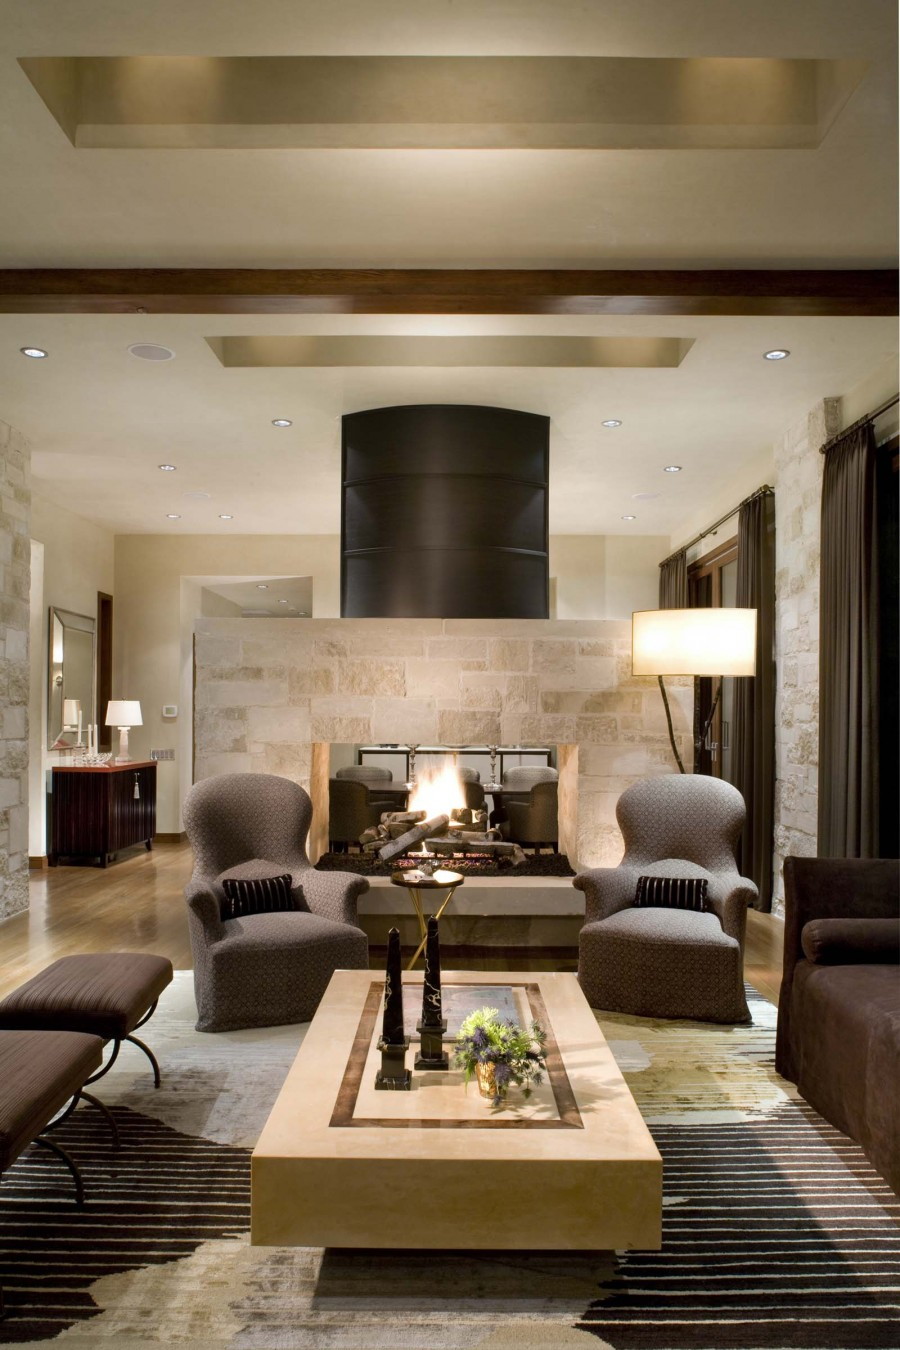 Modern Living Room Dominated By Neutral Colors: 16 Fabulous Earth Tones Living Room Designs